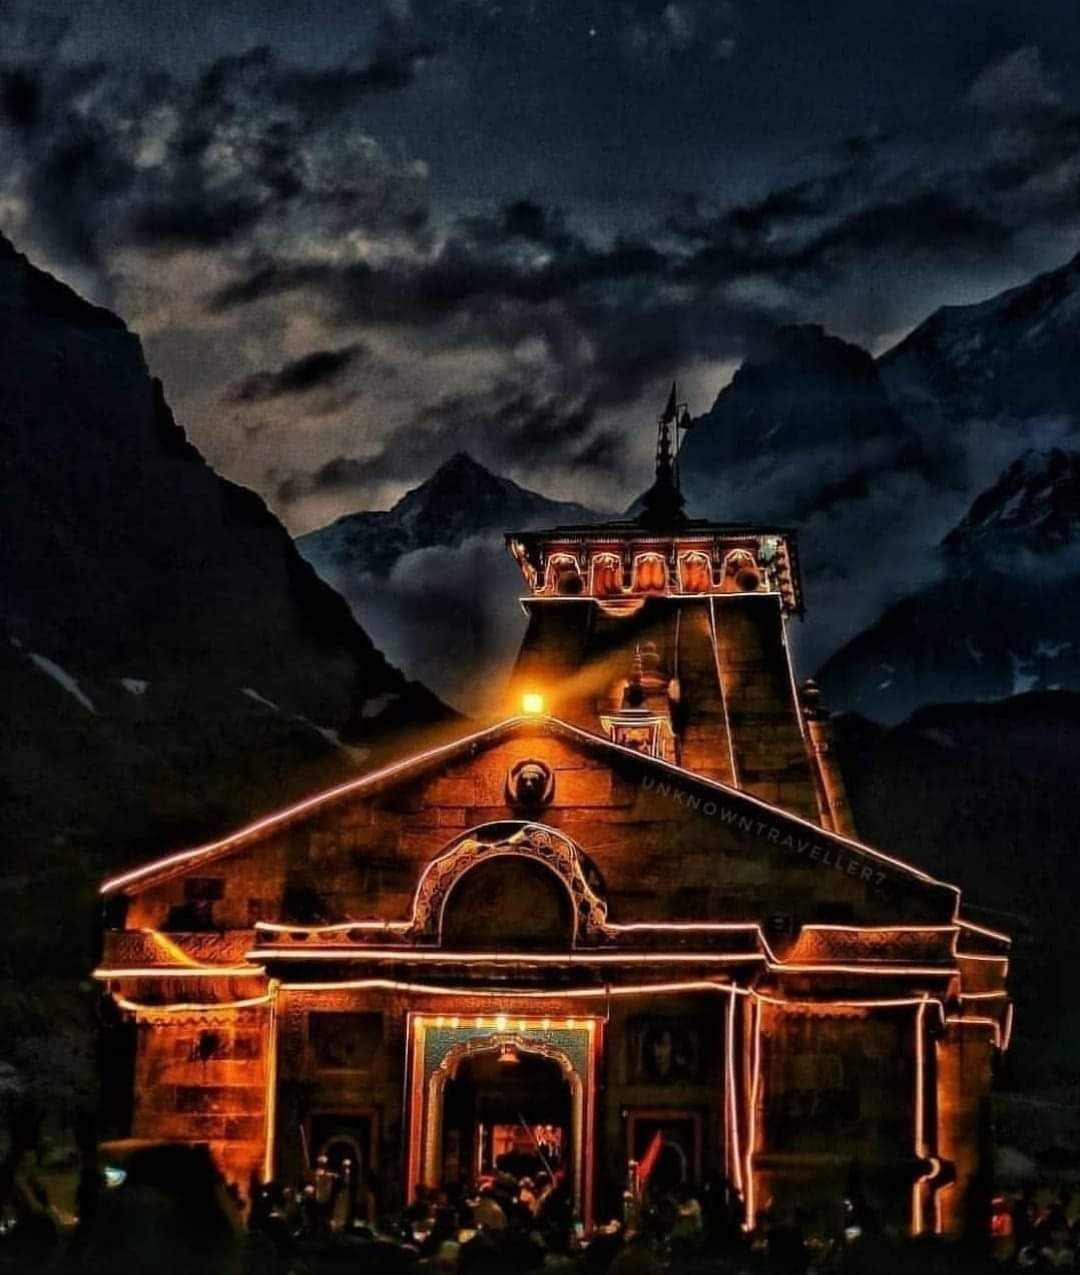 Kedarnath is a town in the Indian state of Uttarakhand and has 1080x1275